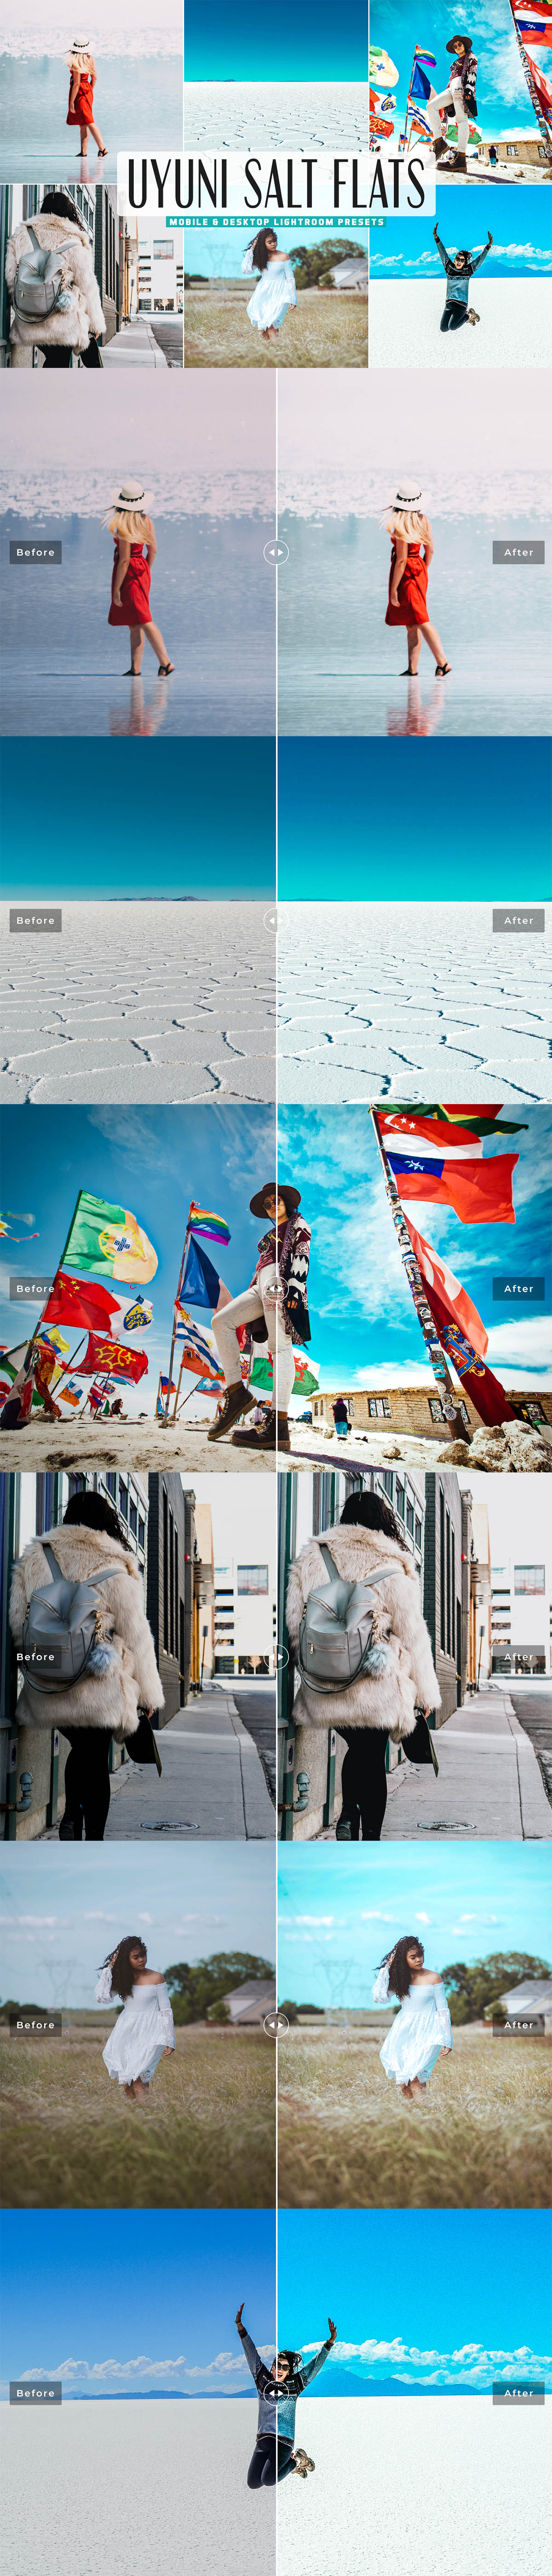 Free Uyuni Salt Flats Lightroom Presets